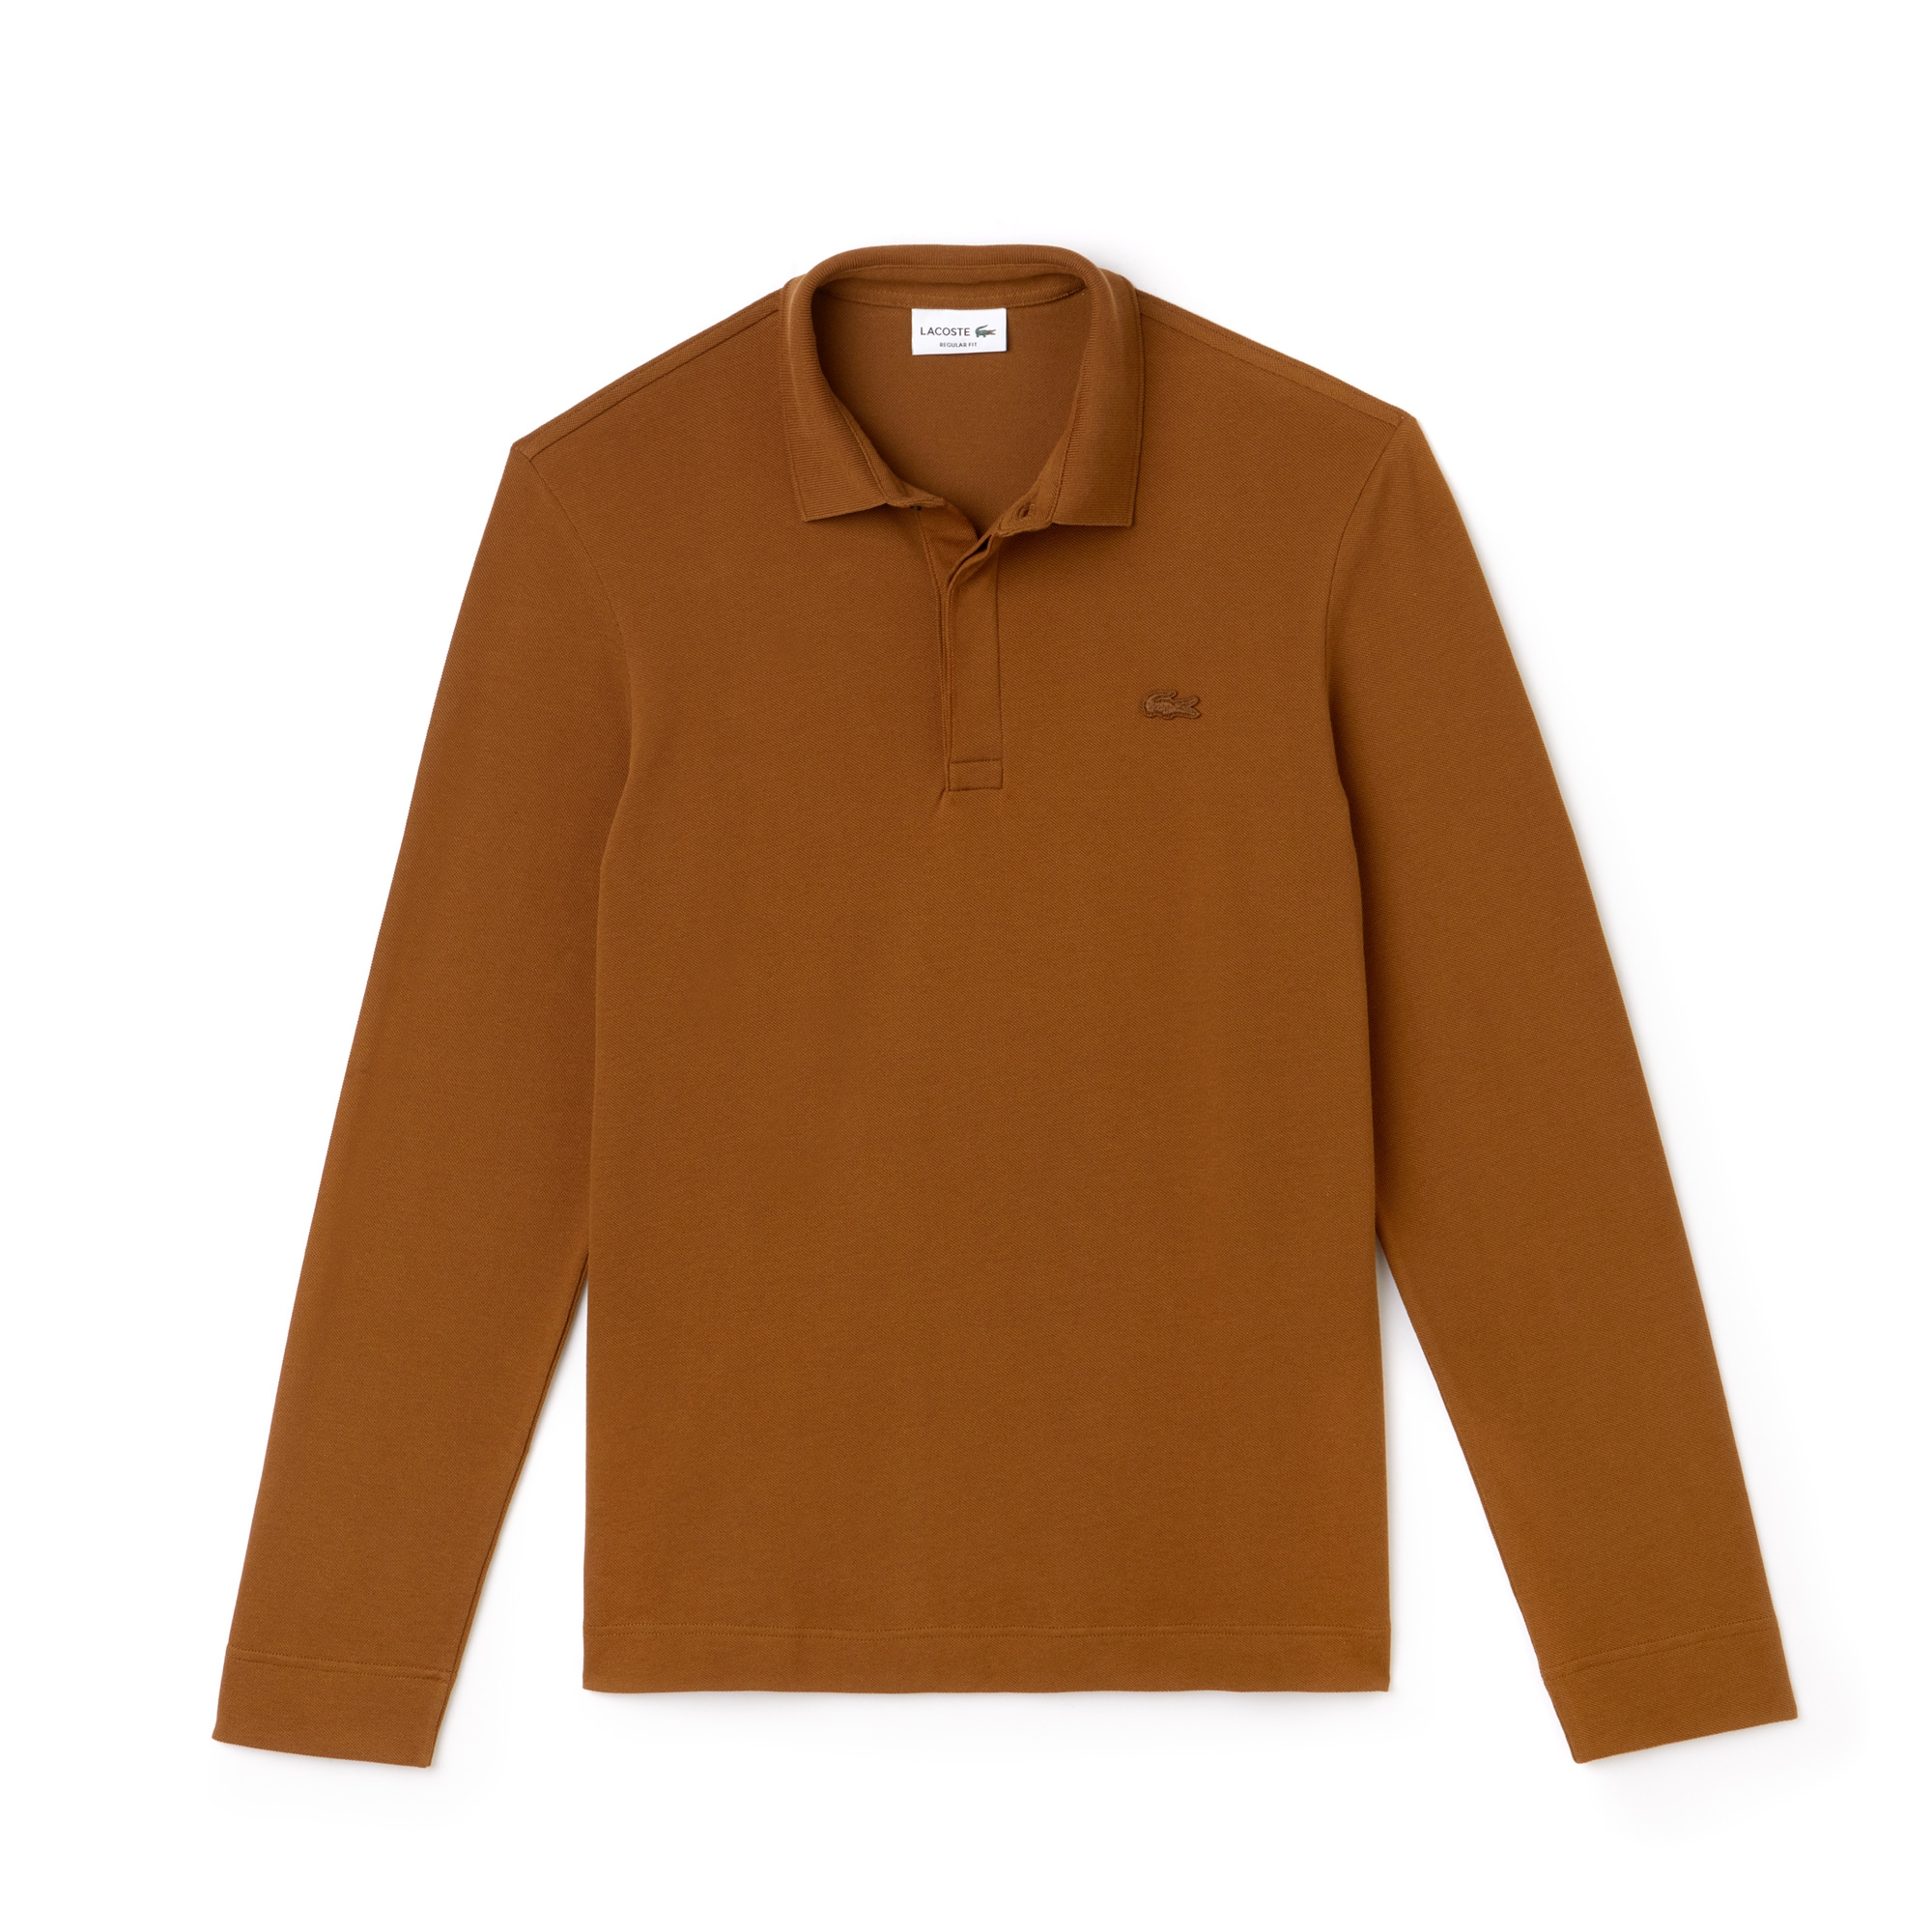 라코스테 Lacoste Mens Long-sleeve Paris Polo Regular Fit Stretch Cotton Pique,dark renaissance brown